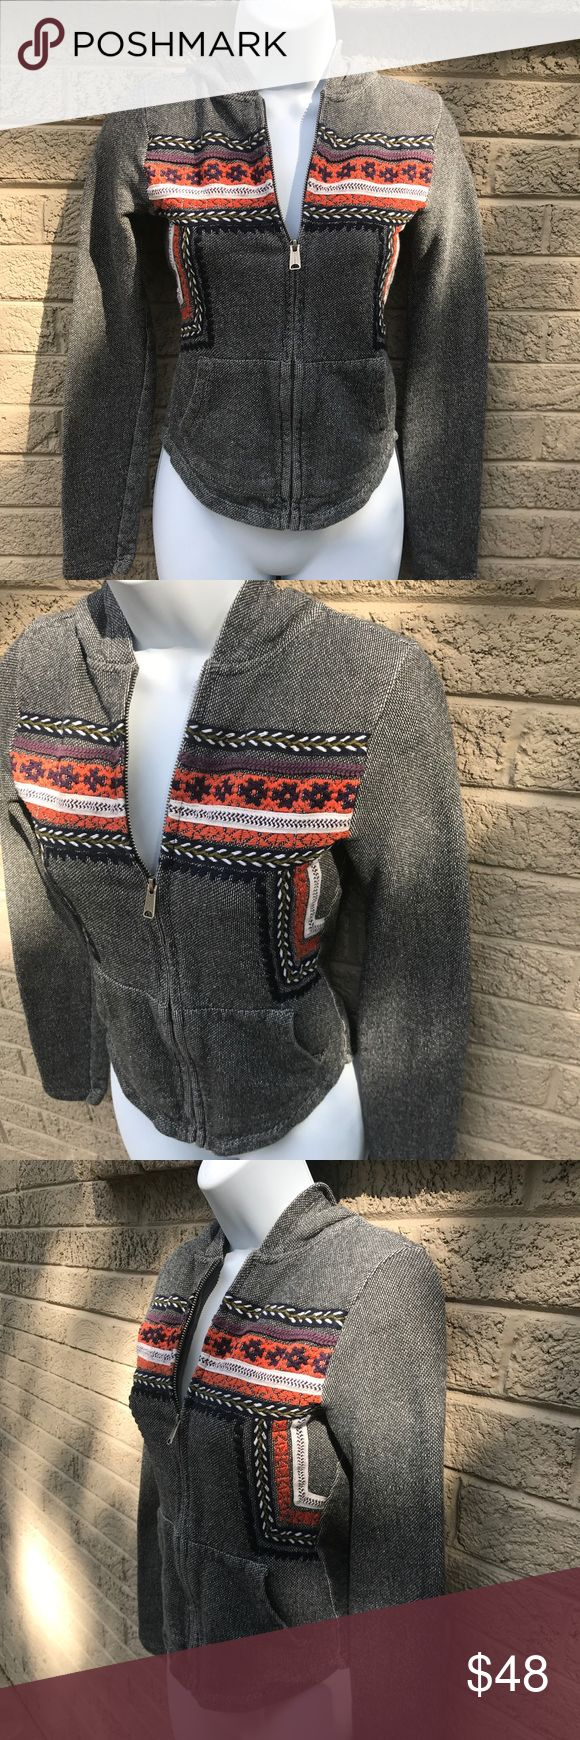 Lucky brand Aztec embroidered zip up hoodie Worn a couple times, great condition! Super cute! Lucky Brand Tops Sweatshirts & Hoodies